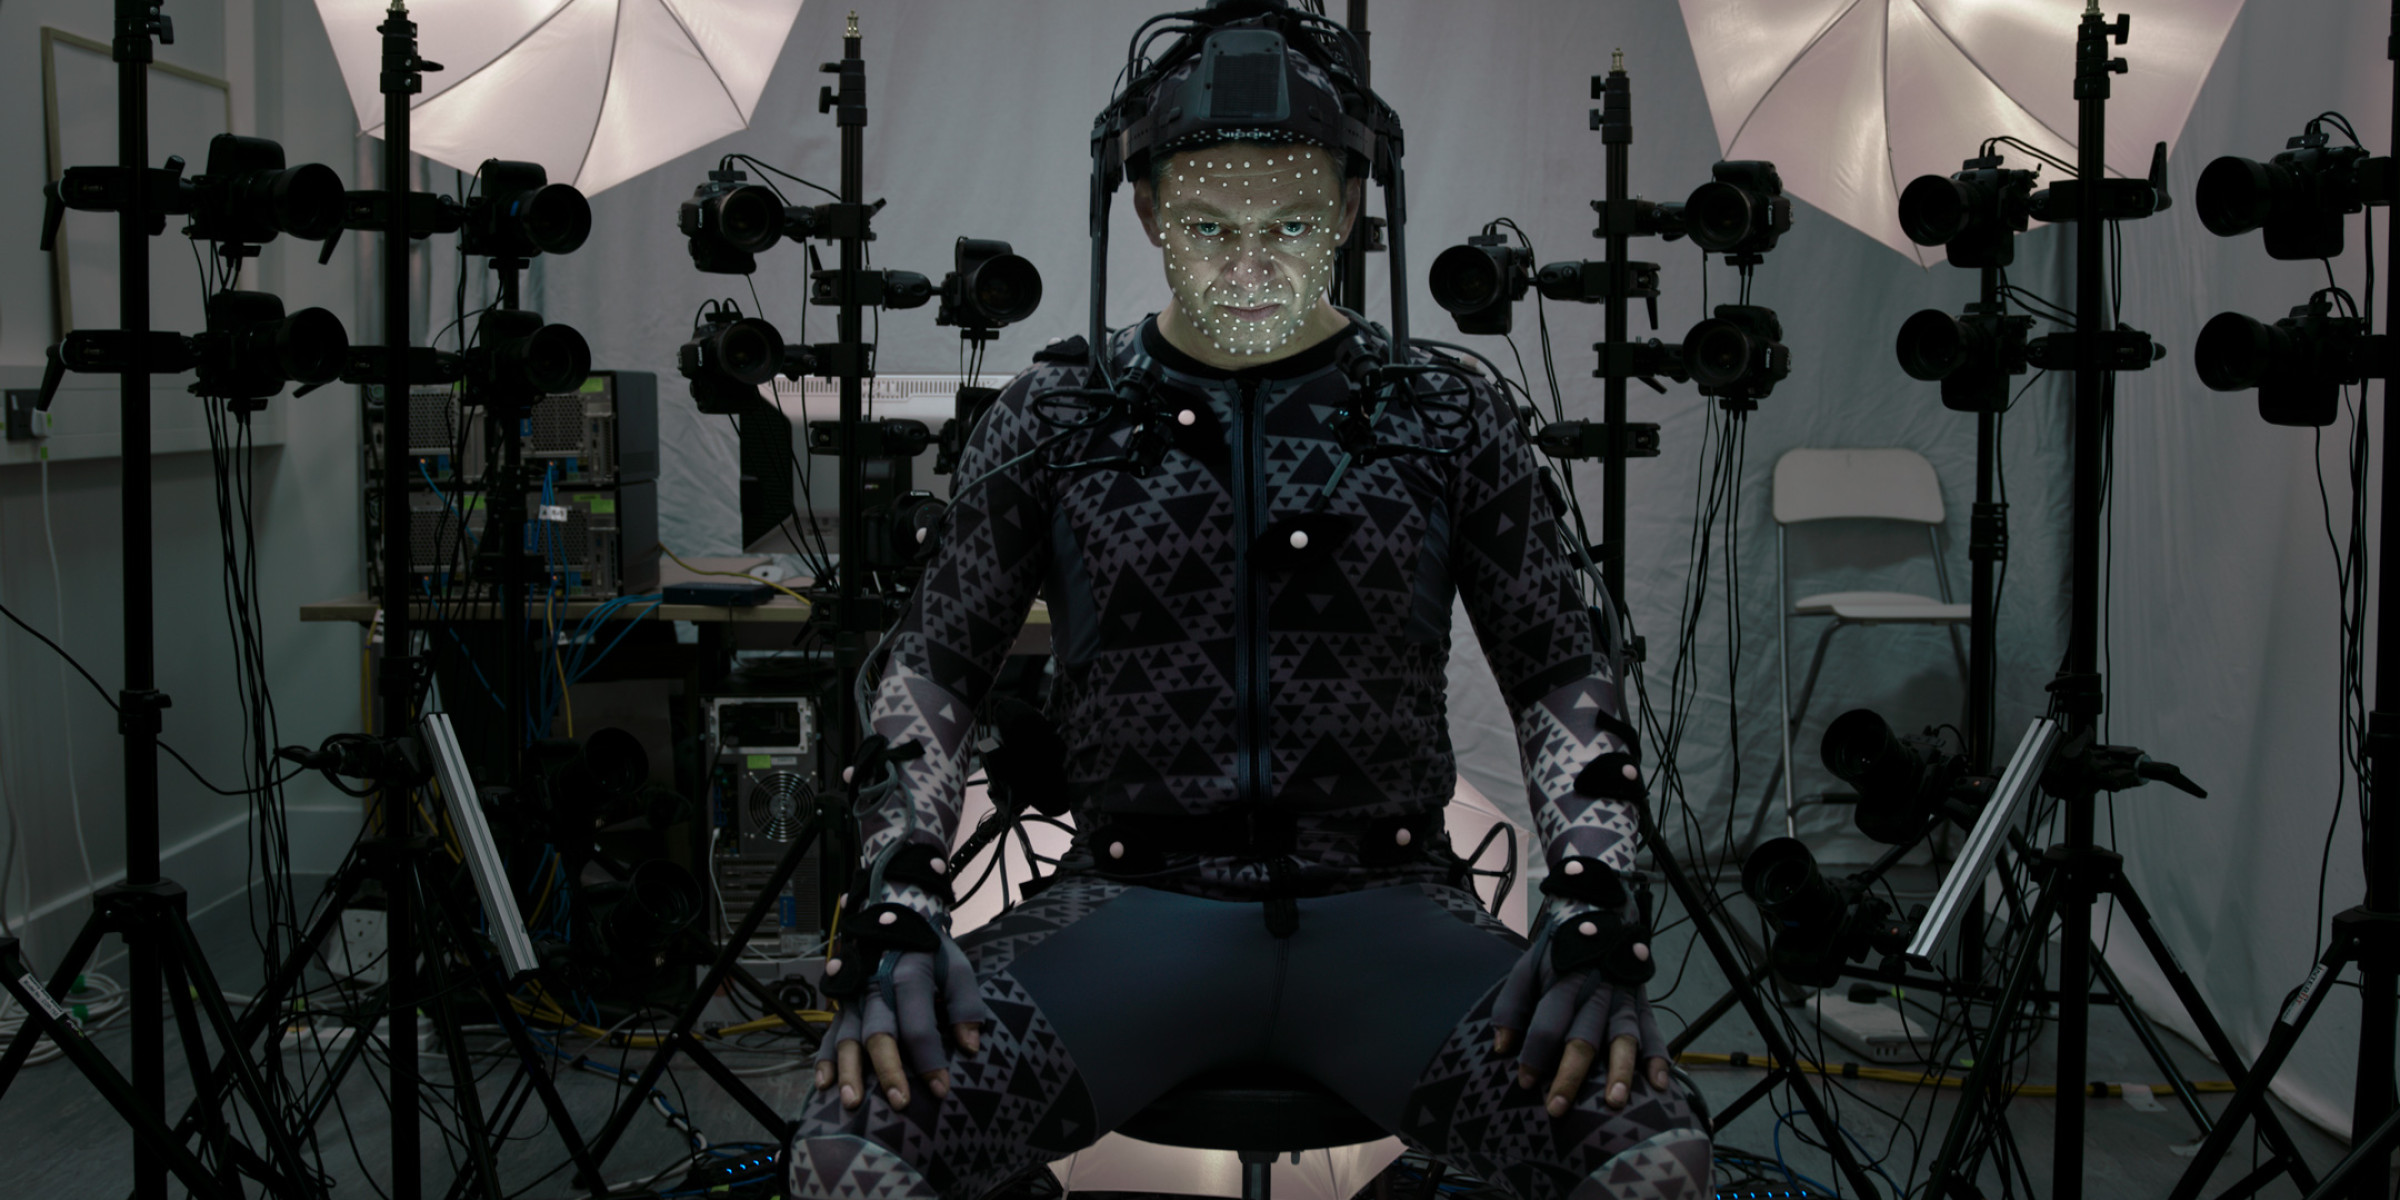 Star Wars: The Last Jedi's Andy Serkis Dishes More Details On Supreme Leader Snoke